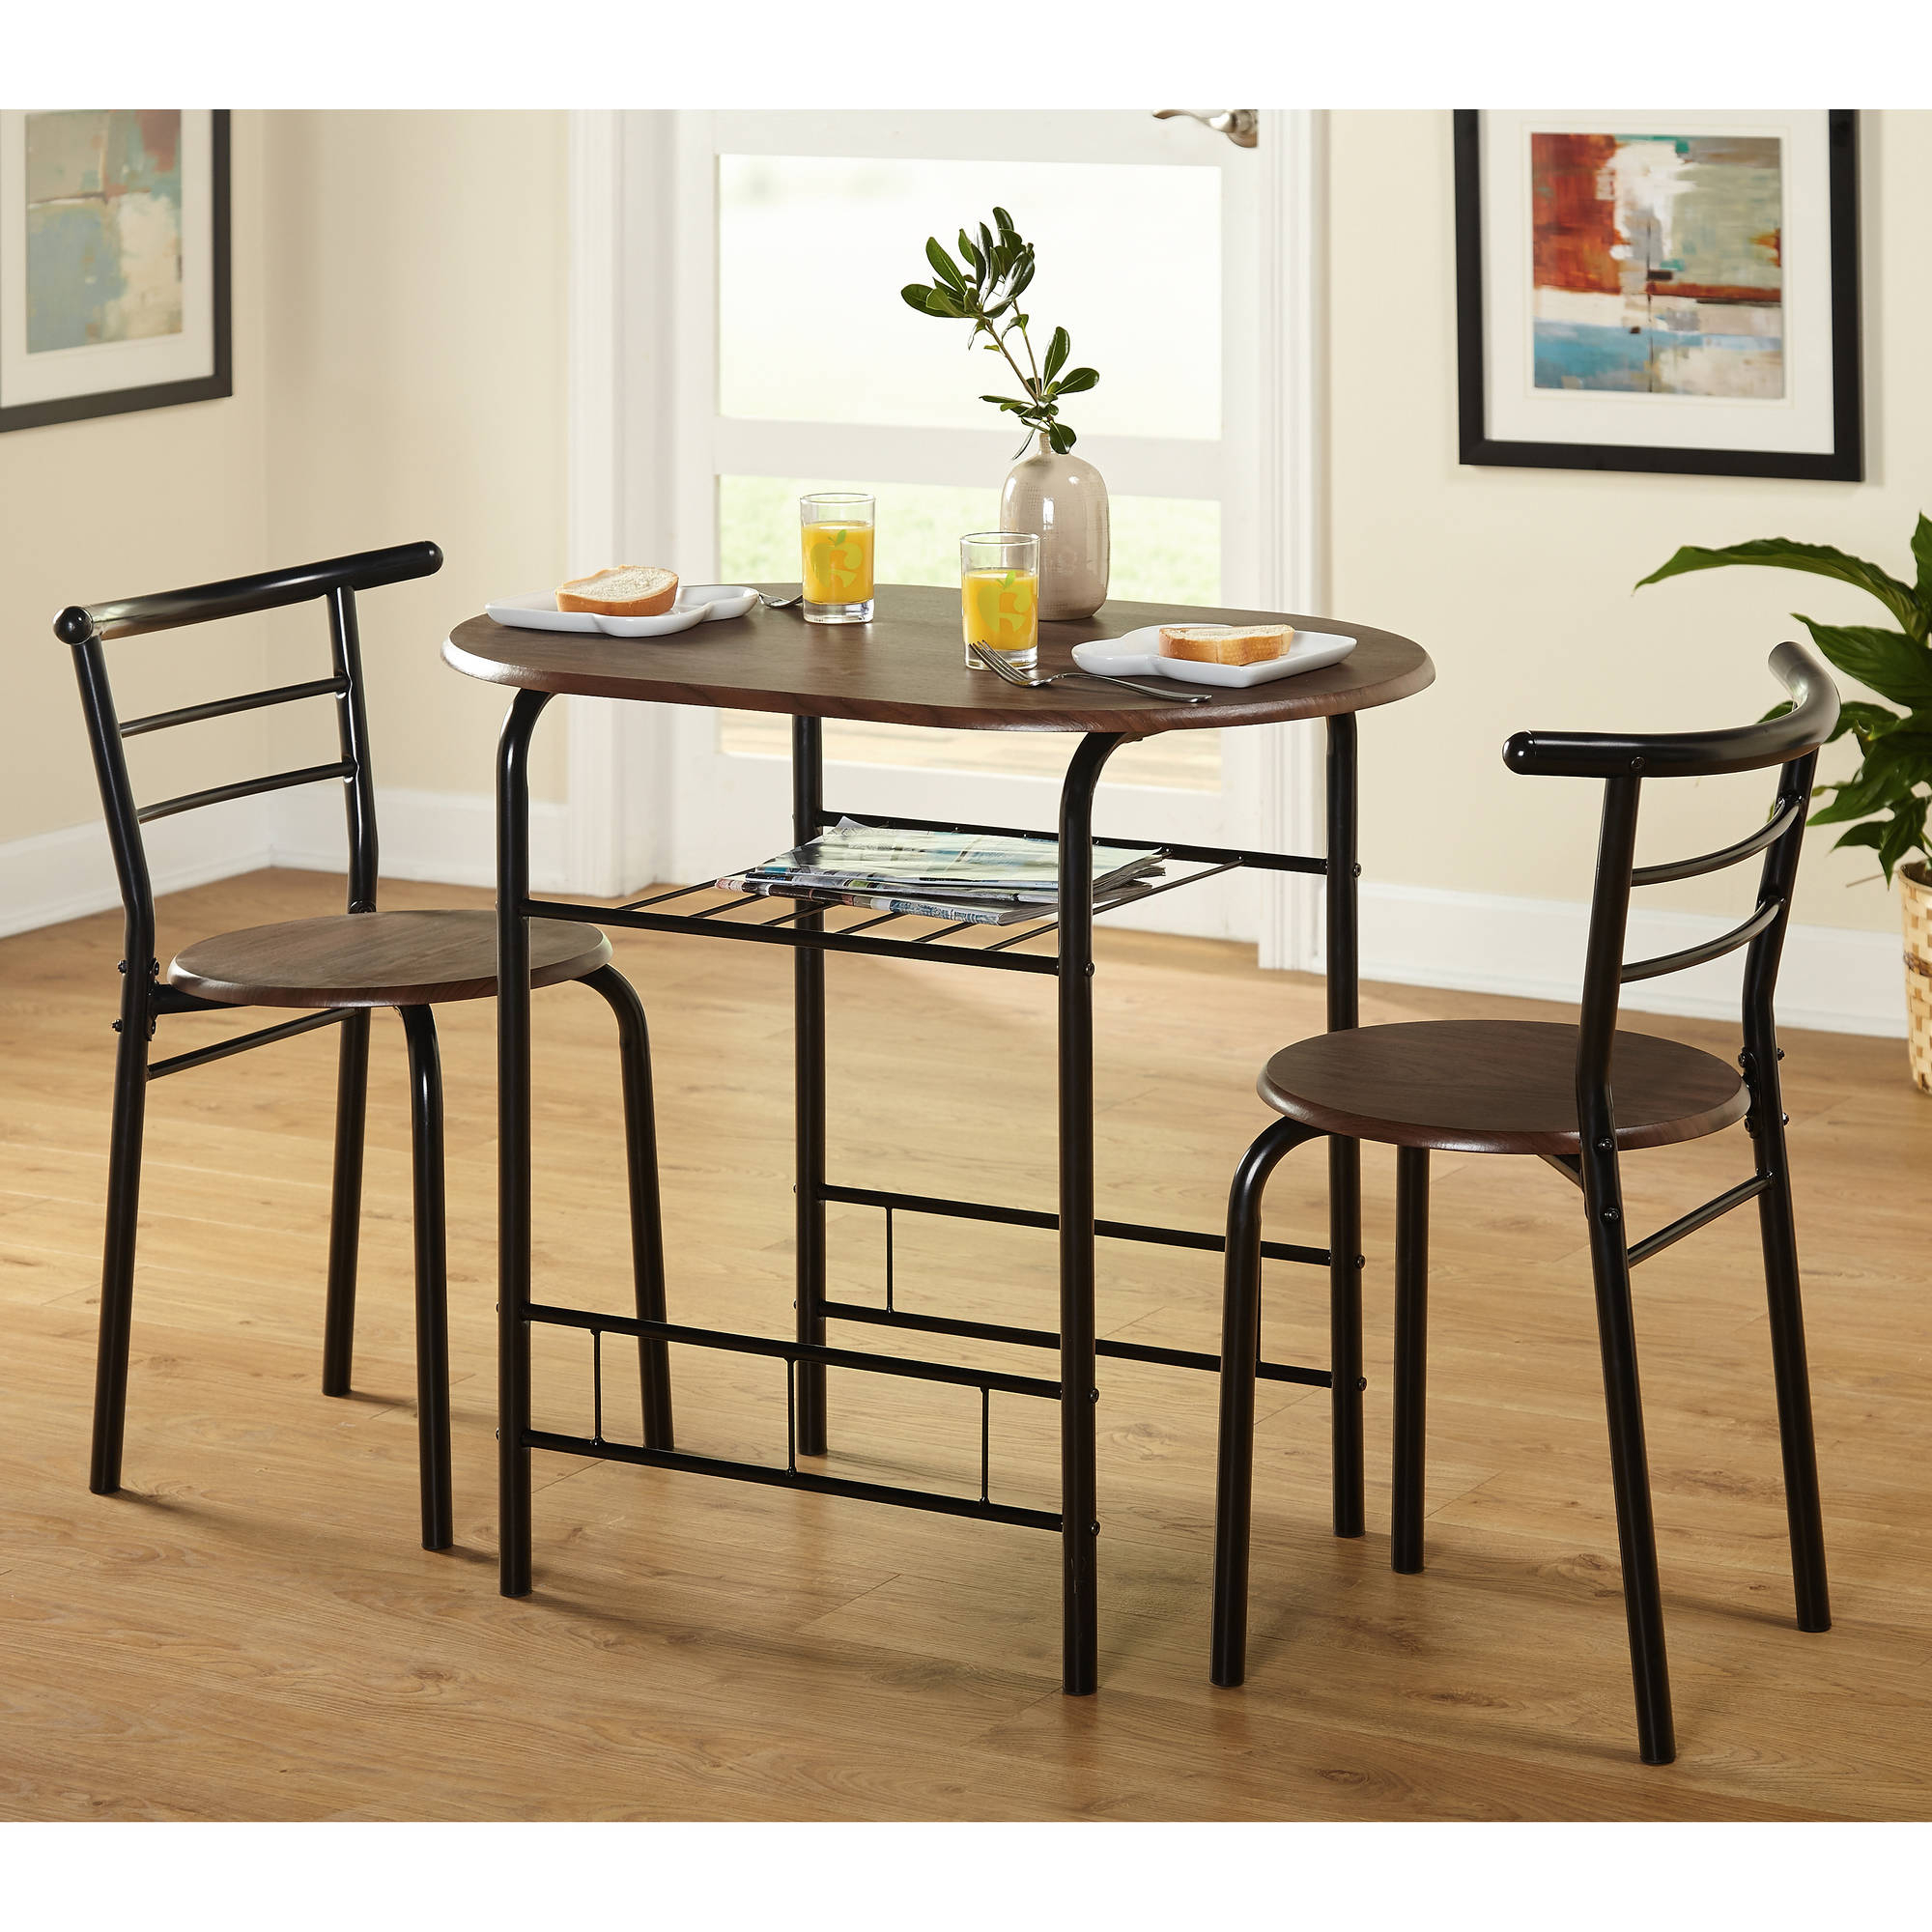 Recent Tms 3 Piece Bistro Dining Set Pertaining To 3 Piece Dining Sets (View 8 of 20)